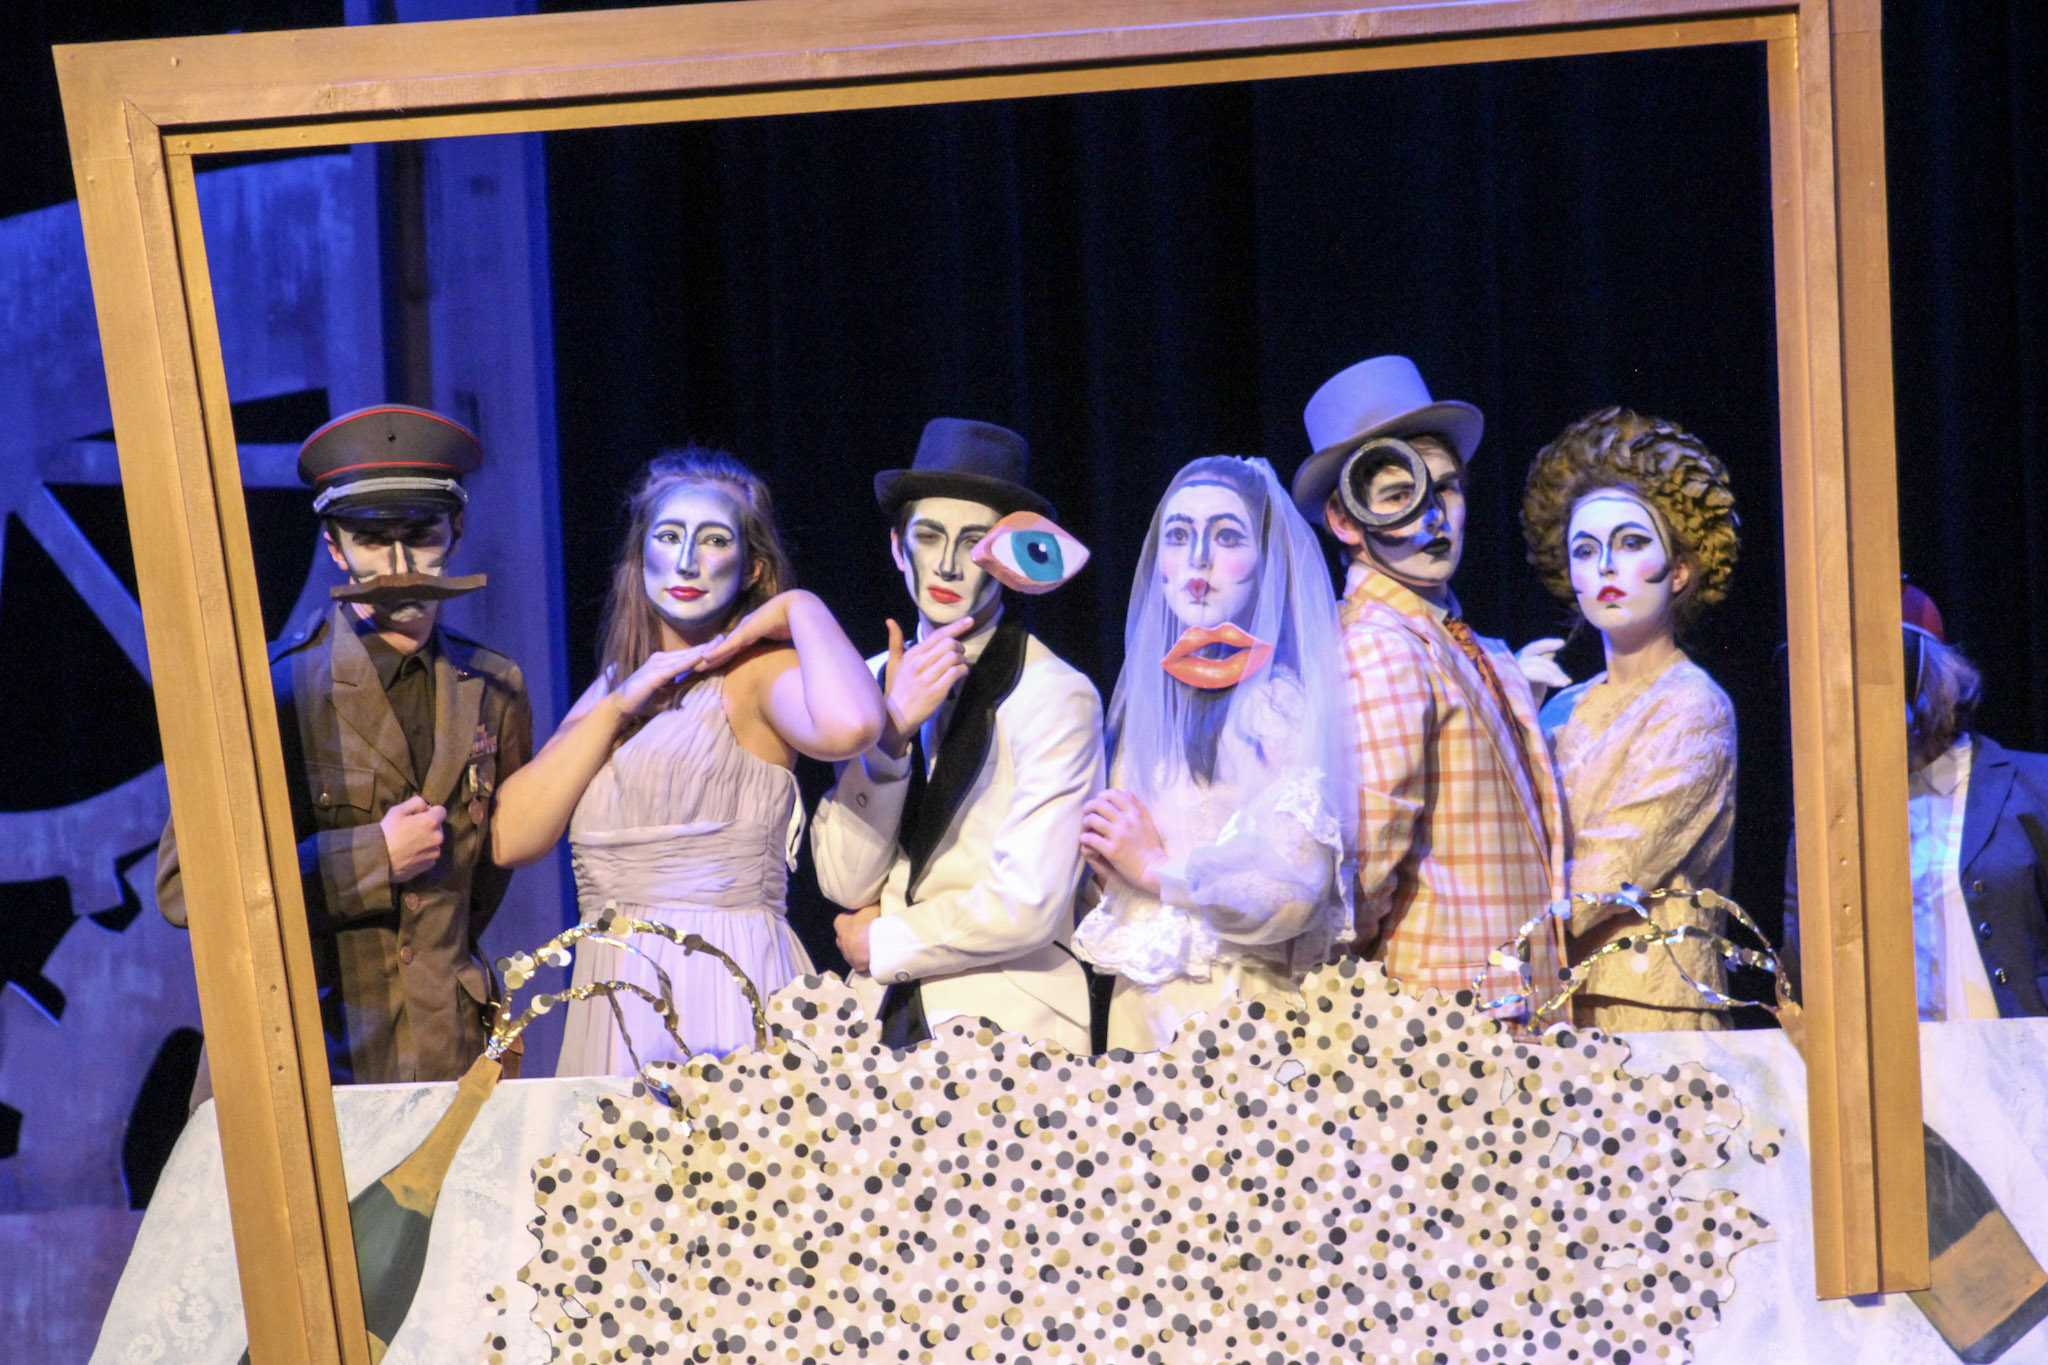 The+Winter+One+Acts+highlight+student+directing+and+acting+on+the+Huss+stage+on+Jan.+27.+%28From+left+to+right%29+sophomore+Max+Moen%2C+junior+Sylvie+Schifsky%2C+junior+Drew+Fawcett%2C+junior+Maya+Shrestha%2C+junior+Jonah+Harrison+and+sophomore+Elise+Parsons+perform.+